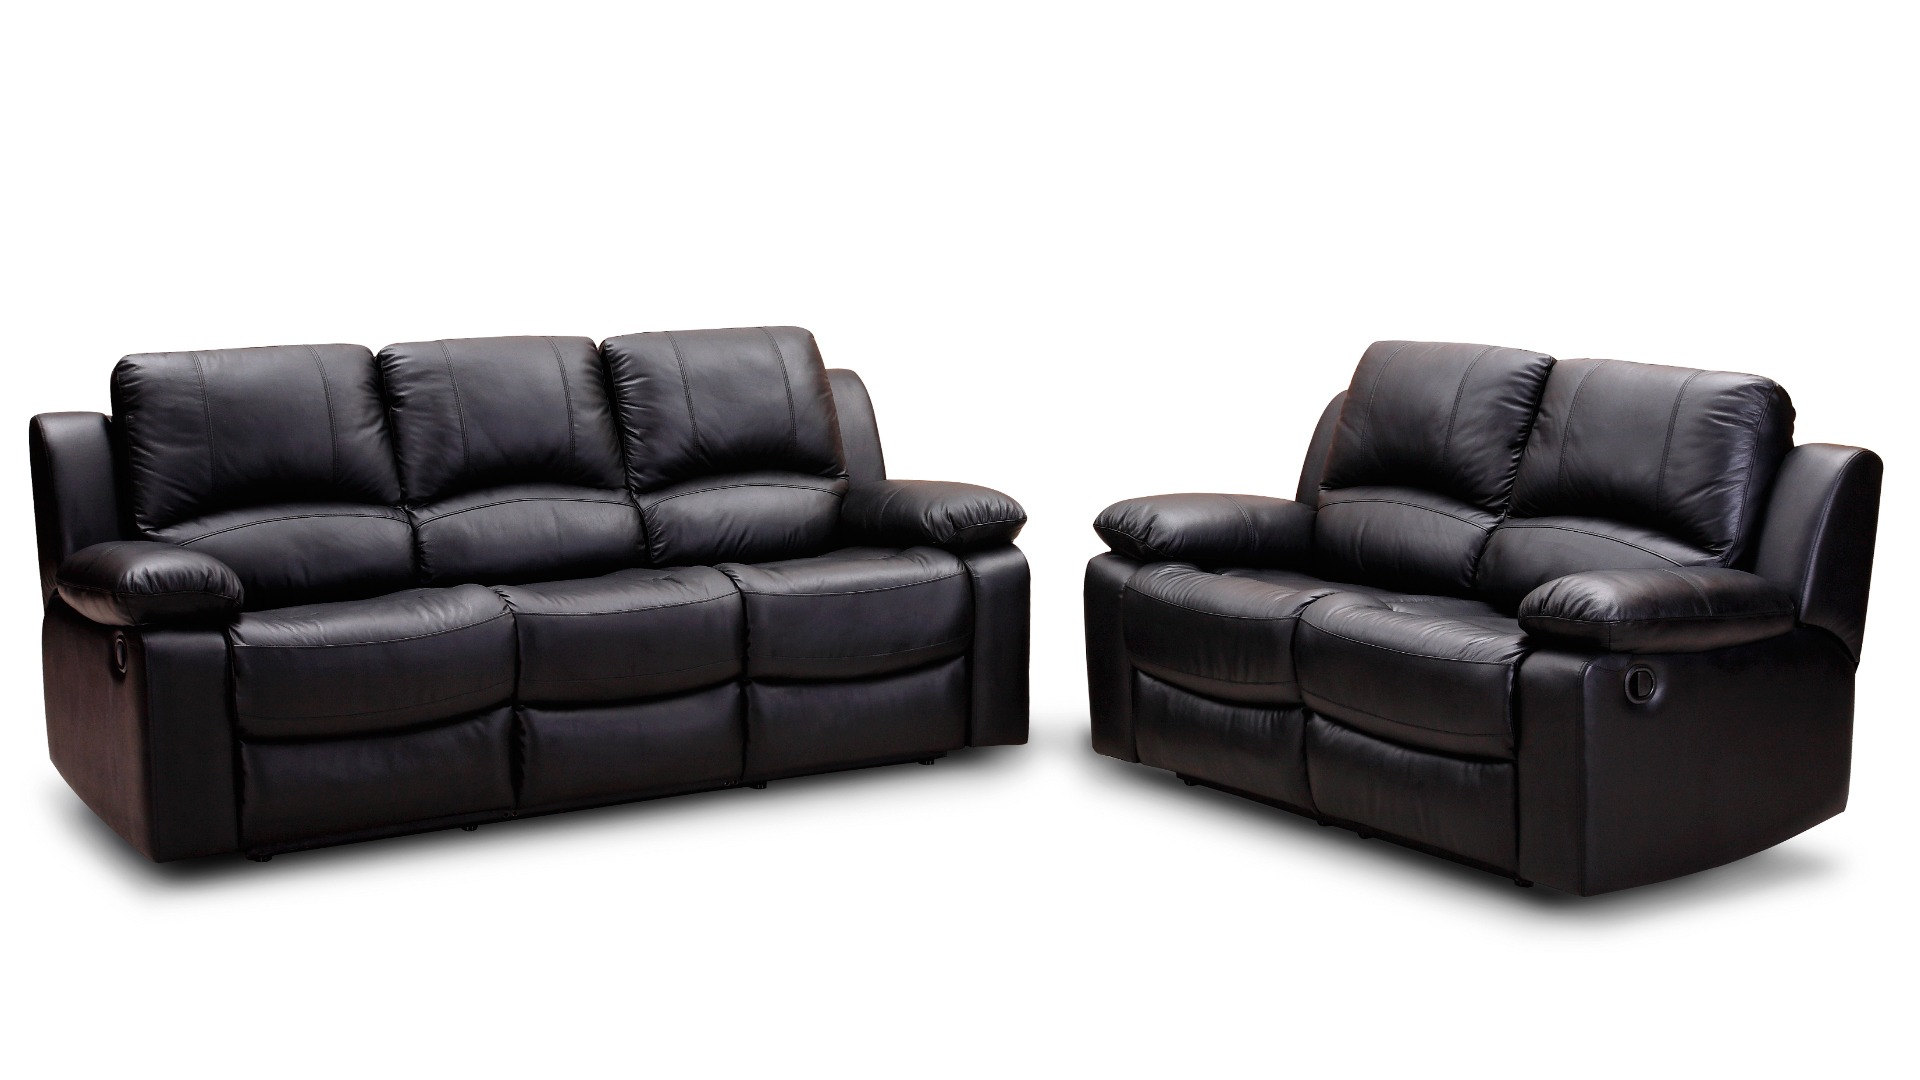 leather-sofa-186636.jpg